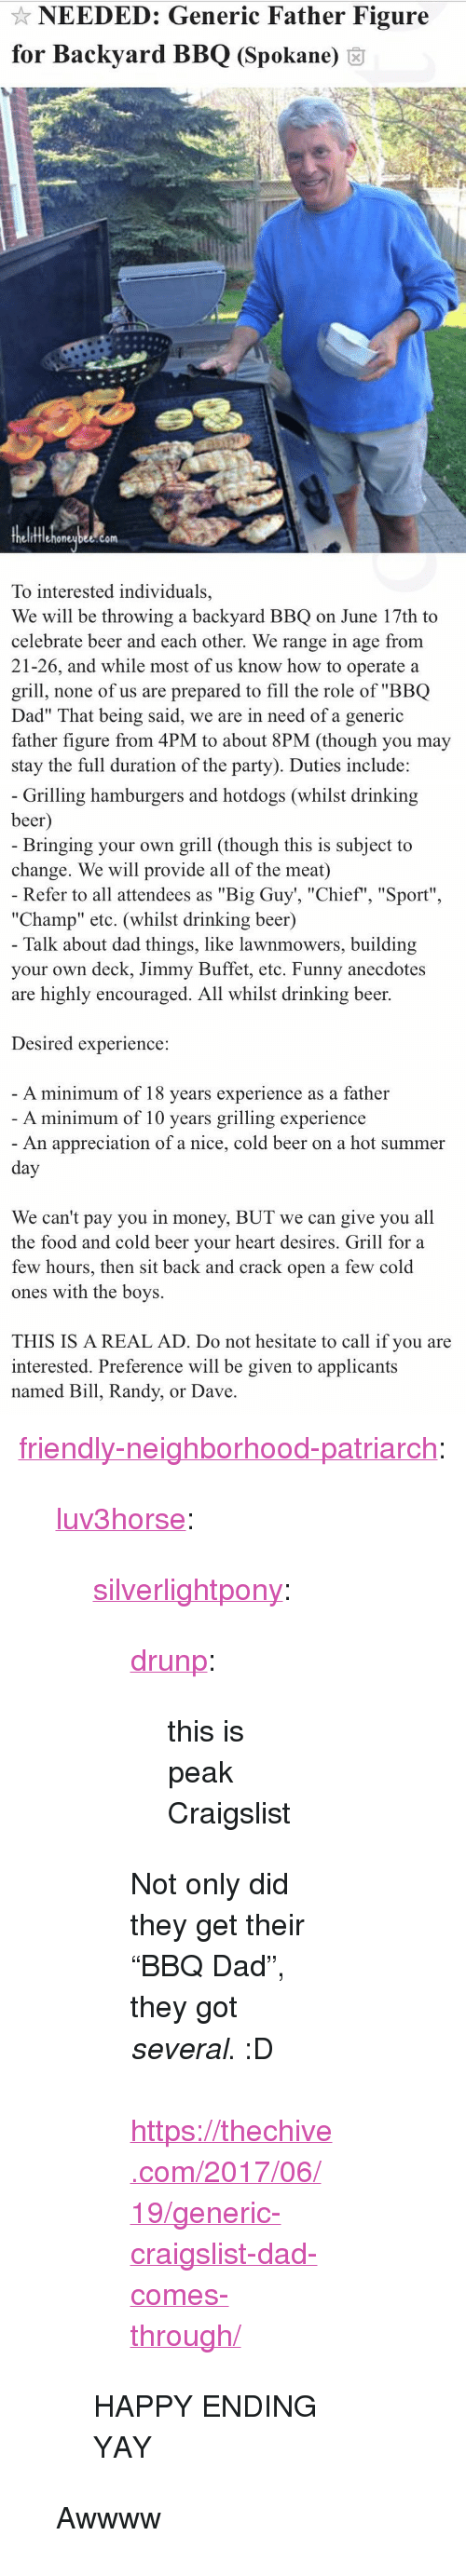 "drinking beer: NEEDED: Generic Father Figure  for Backyard BBQ (Spokane) 6  fflehoneubee.com  To interested individuals,  We will be throwing a backyard BBQ on June 17th to  celebrate beer and each other. We range in age from  21-26, and while most of us know how to operate a  grill, none of us are prepared to fill the role of ""BBQ  Dad"" That being said, we are in need of a generic  father figure from 4PM to about 8PM (though you may  stay the full duration of the party). Duties include:   Grilling hamburgers and hotdogs (whilst drinking  beer  Bringing your own grill (though this is subject to  change. We will provide all of the meat)  Refer to all attendees as ""Big Guy', ""Chief"", ""Sport""  ""Champ"" etc. (whilst drinking beer)  Talk about dad things, like lawnmowers, building  your own deck, Jimmy Buffet, etc. Funny anecdotes  are highly encouraged. All whilst drinking beer.  Desired experience:  A minimum of 18 vears experience as a father  A minimum of 10 years grilling experience  An appreciation of a nice, cold beer on a hot summer  We can't pay you in money, BUT we can give you all  the food and cold beer vour heart desires. Grill for a  few hours, then sit back and crack open a few cold  ones with the boys.  THIS IS A REAL AD. Do not hesitate to call if you are  interested. Preference will be given to applicants  named Bill, Randy, or Dave <p><a href=""http://friendly-neighborhood-patriarch.tumblr.com/post/170766193952/luv3horse-silverlightpony-drunp-this-is"" class=""tumblr_blog"">friendly-neighborhood-patriarch</a>:</p><blockquote> <p><a href=""http://luv3horse.tumblr.com/post/164653478181/silverlightpony-drunp-this-is-peak-craigslist"" class=""tumblr_blog"">luv3horse</a>:</p> <blockquote> <p><a href=""https://silverlightpony.tumblr.com/post/162259709552/drunp-this-is-peak-craigslist-not-only-did-they"" class=""tumblr_blog"">silverlightpony</a>:</p>  <blockquote> <p><a href=""https://drunp.tumblr.com/post/161376664752/this-is-peak-craigslist"" class=""tumblr_blog"">drunp</a>:</p> <blockquote><p>this is peak Craigslist</p></blockquote> <p>Not only did they get their ""BBQ Dad"", they got <i>several</i>.  :D<br/><br/><a href=""https://thechive.com/2017/06/19/generic-craigslist-dad-comes-through/"">https://thechive.com/2017/06/19/generic-craigslist-dad-comes-through/</a></p> </blockquote>  <p>HAPPY ENDING YAY</p> </blockquote>  <p>Awwww</p> </blockquote>"